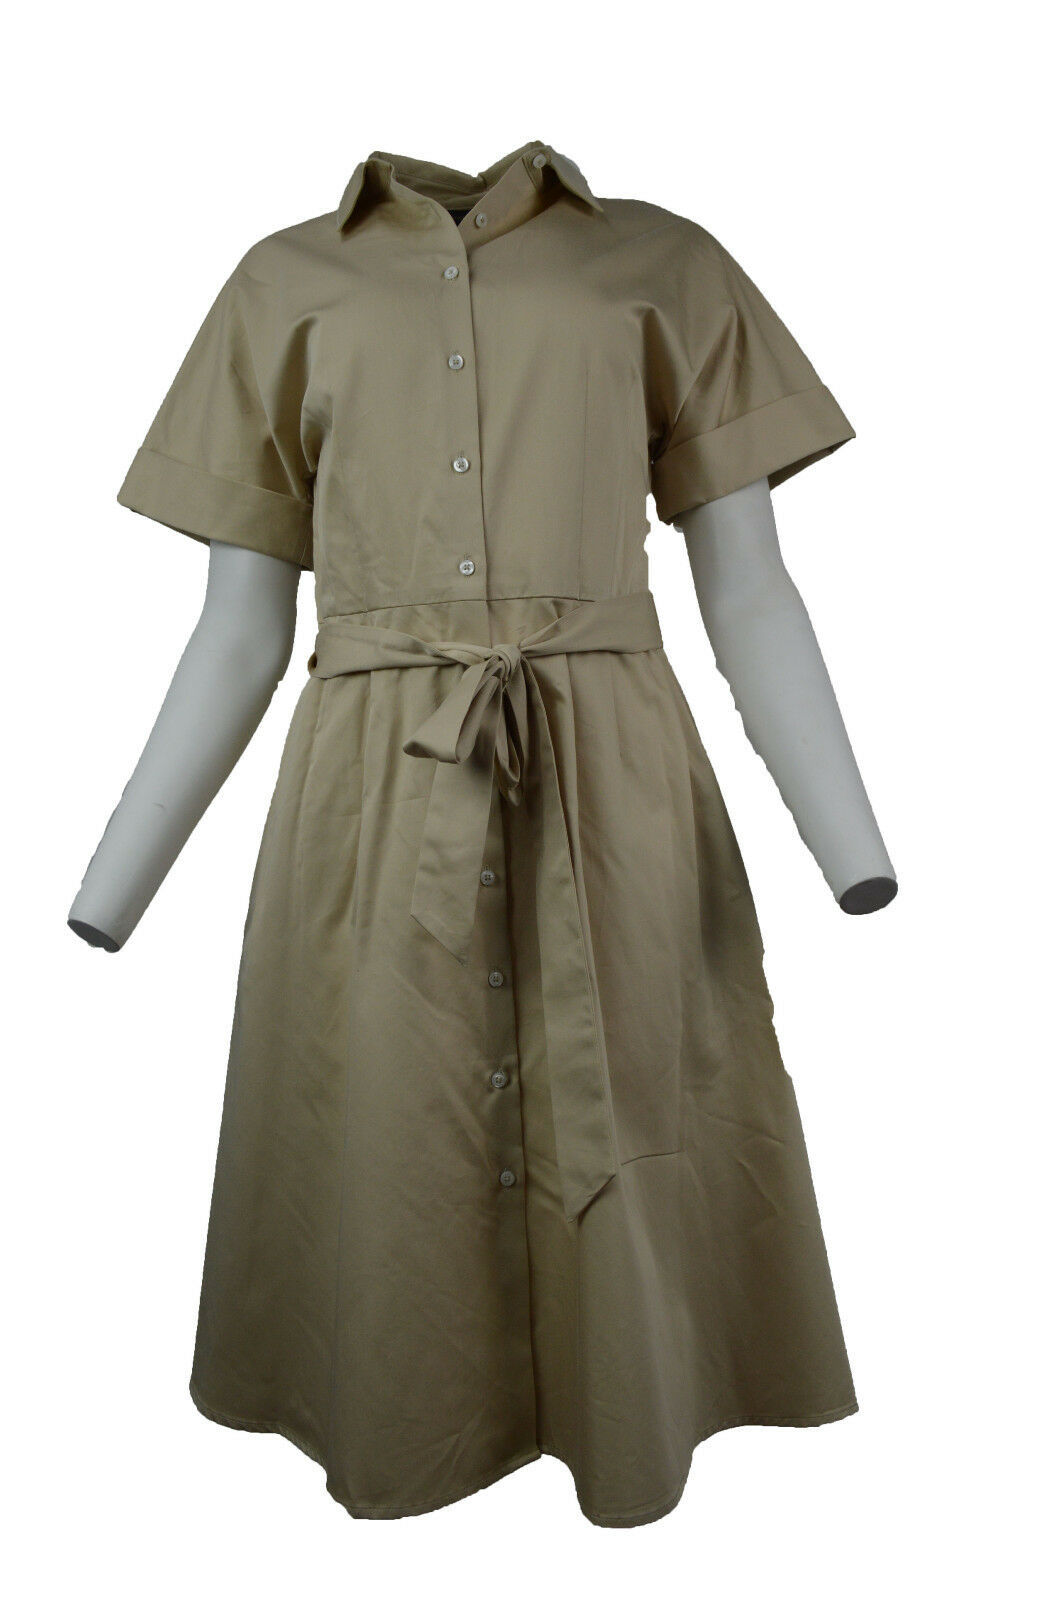 Primary image for New Brooks Brothers Womens Beige Cotton Shirt Size 14 Belt Dress 2898-2